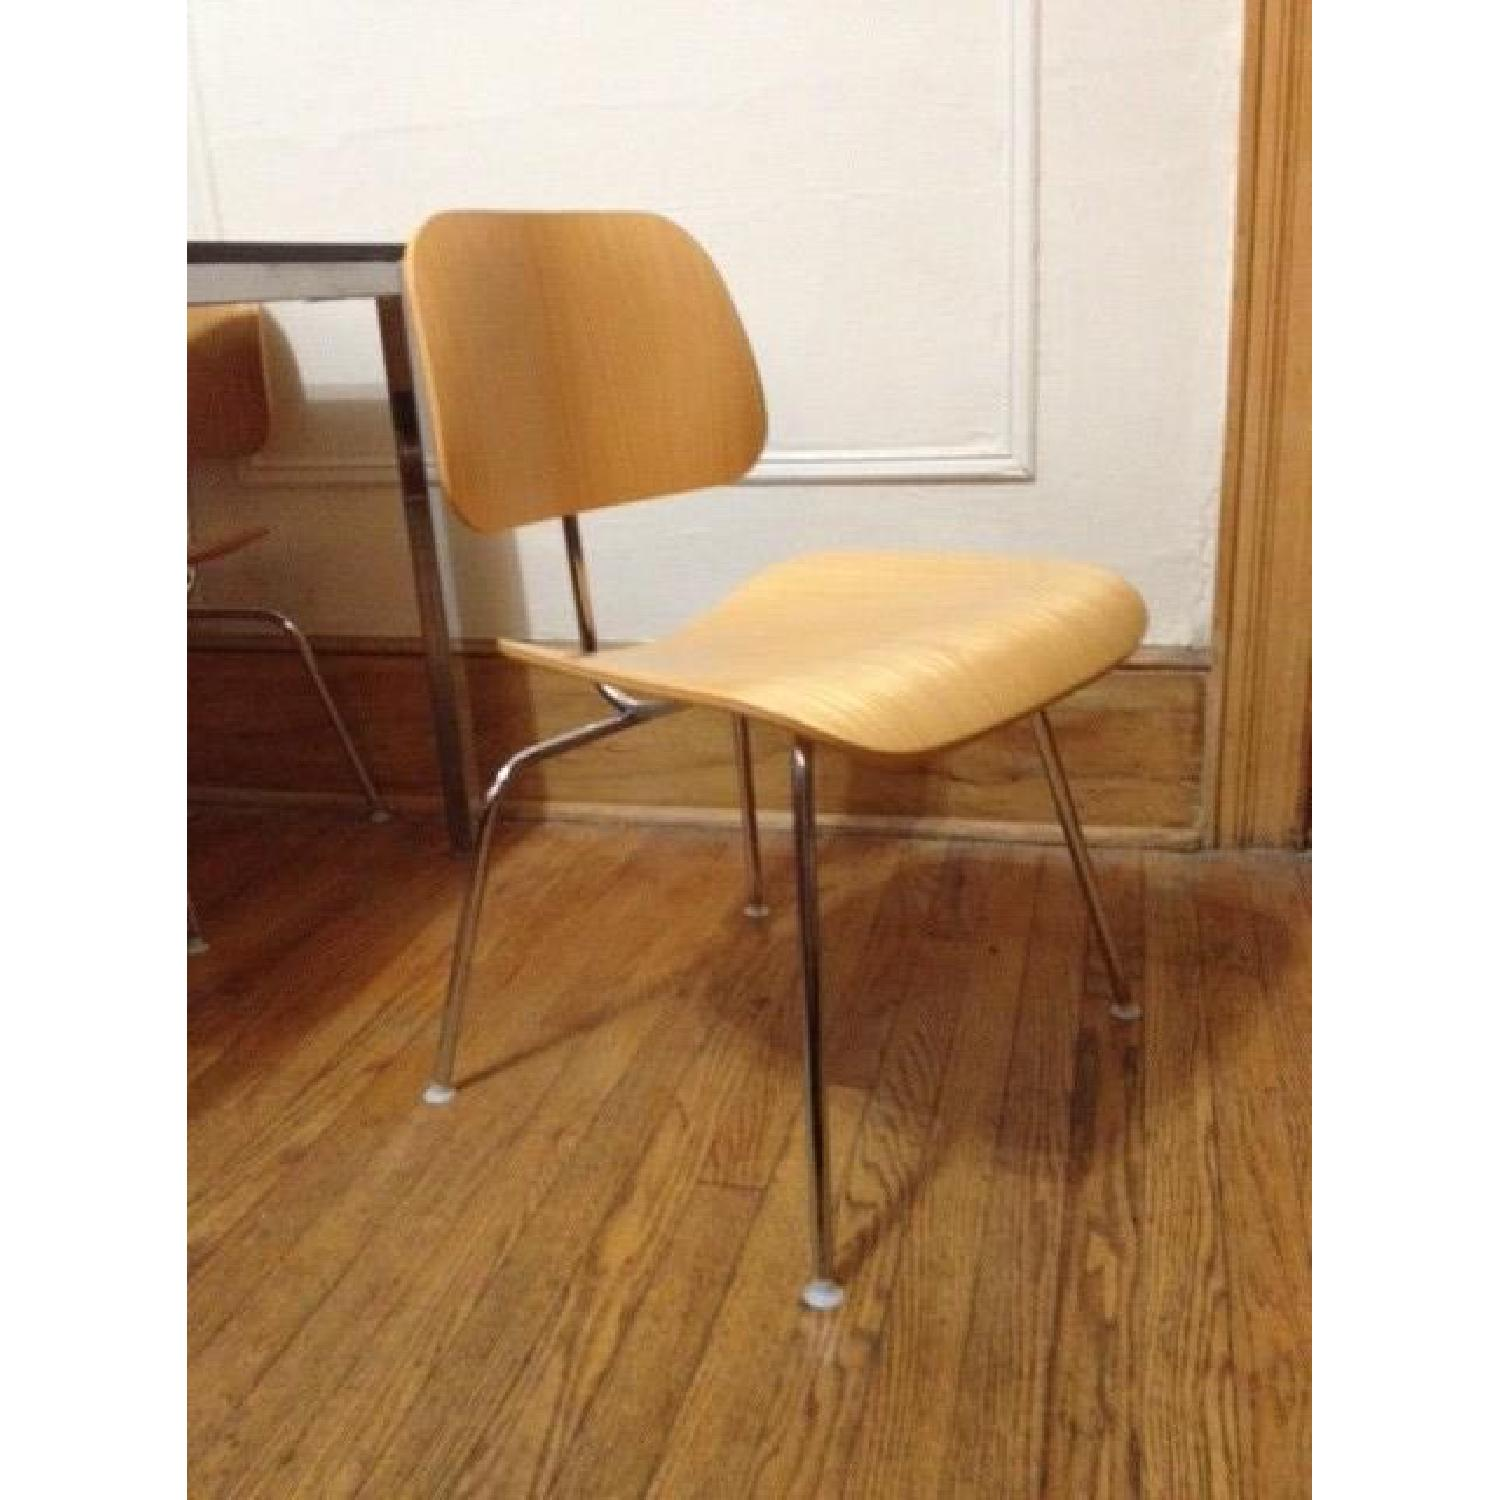 Charles and Ray Eames Dining Chairs - Pair - image-7